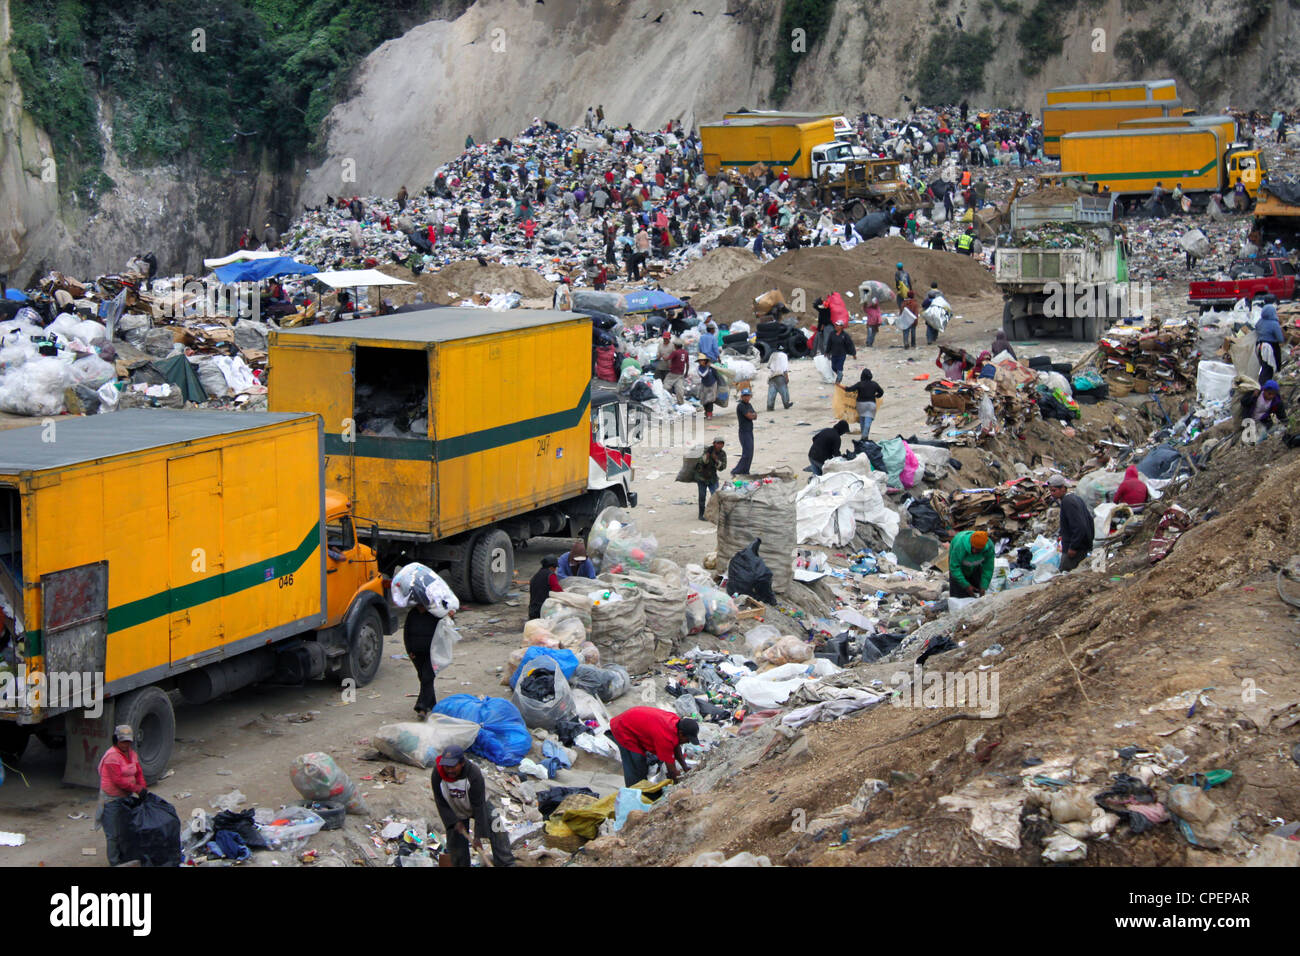 Landfill in Guatemala City. Activity of unloading garbage trucks and scavenging in a dump. - Stock Image